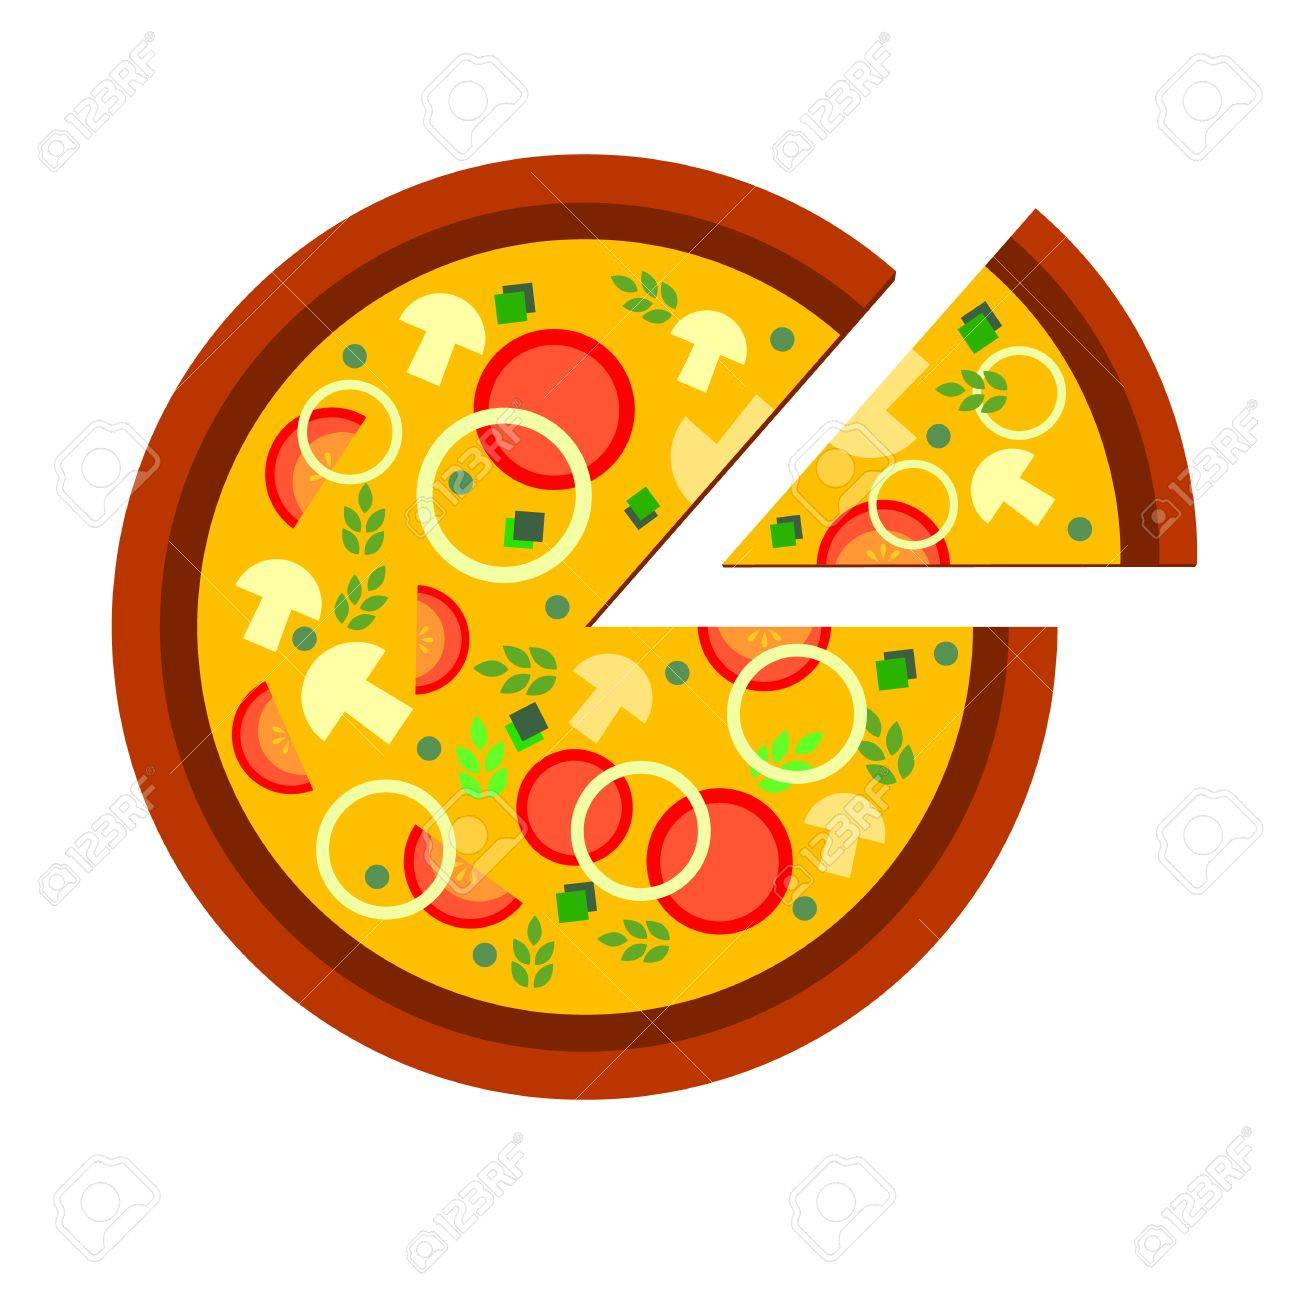 pizza vector food slice illustration cheese restaurant royalty free rh 123rf com pizza vector logo pizza vector logo